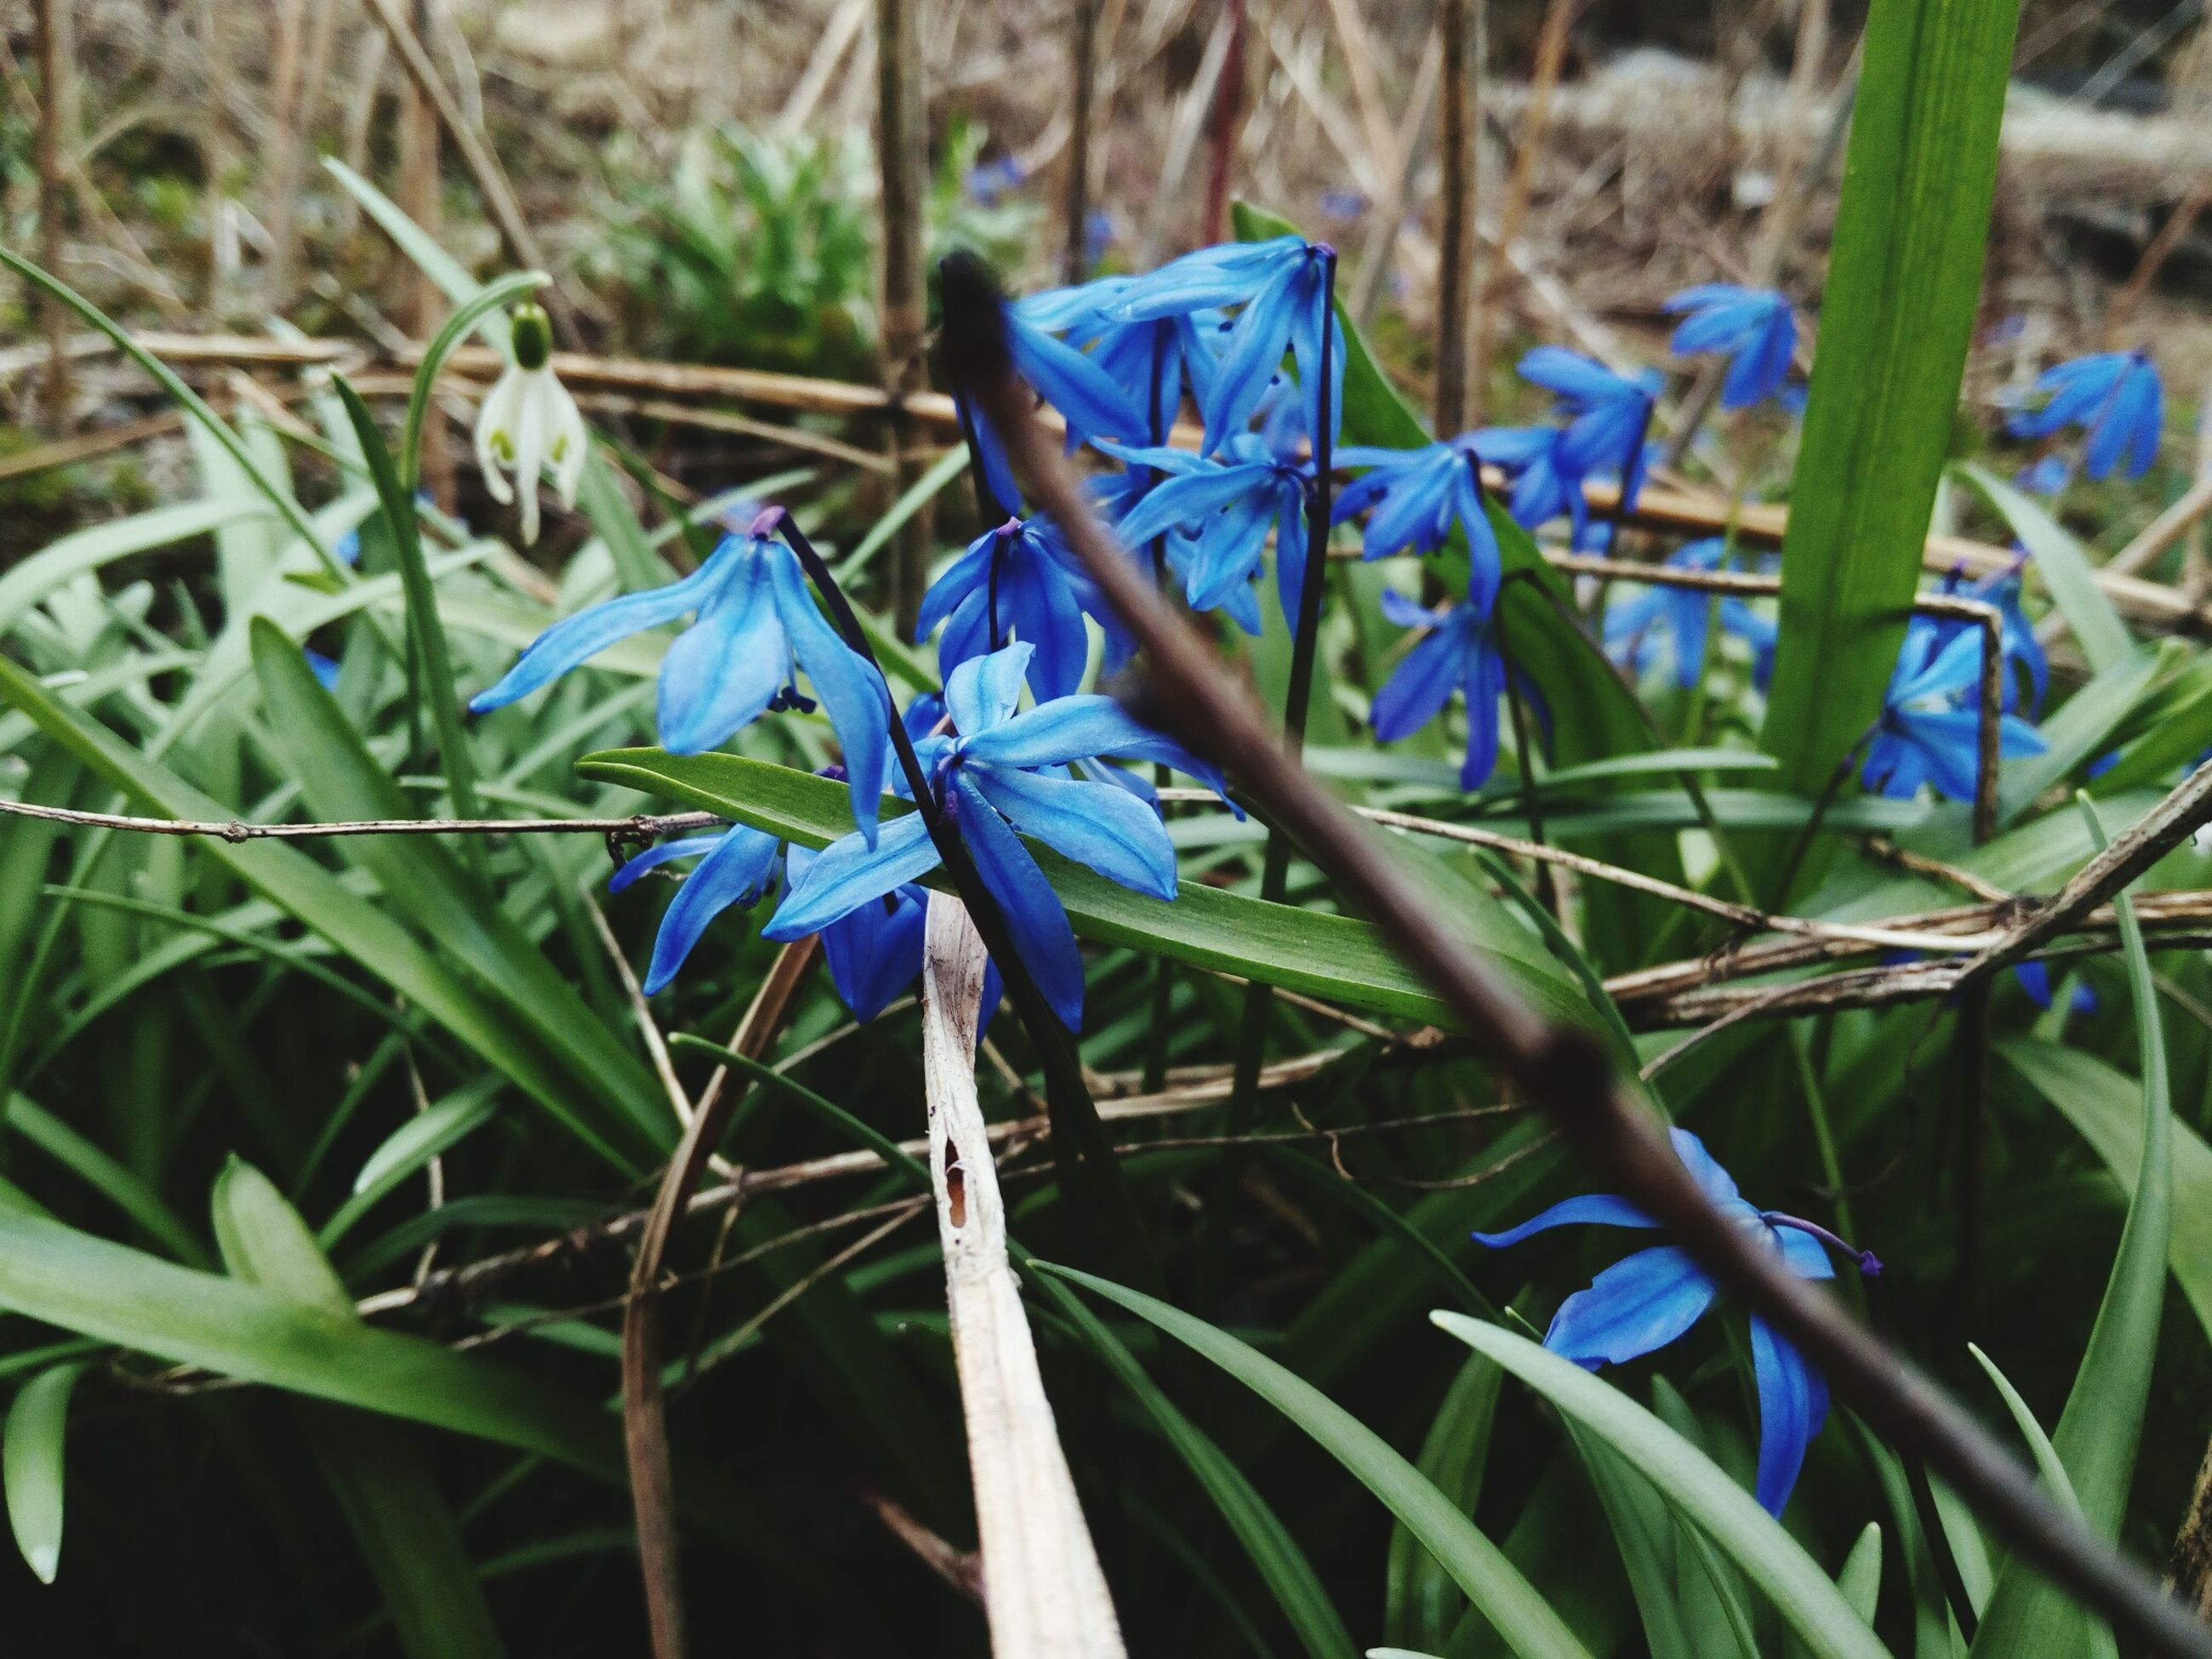 blue, nature, purple, fragility, outdoors, plant, growth, beauty in nature, no people, close-up, day, animal themes